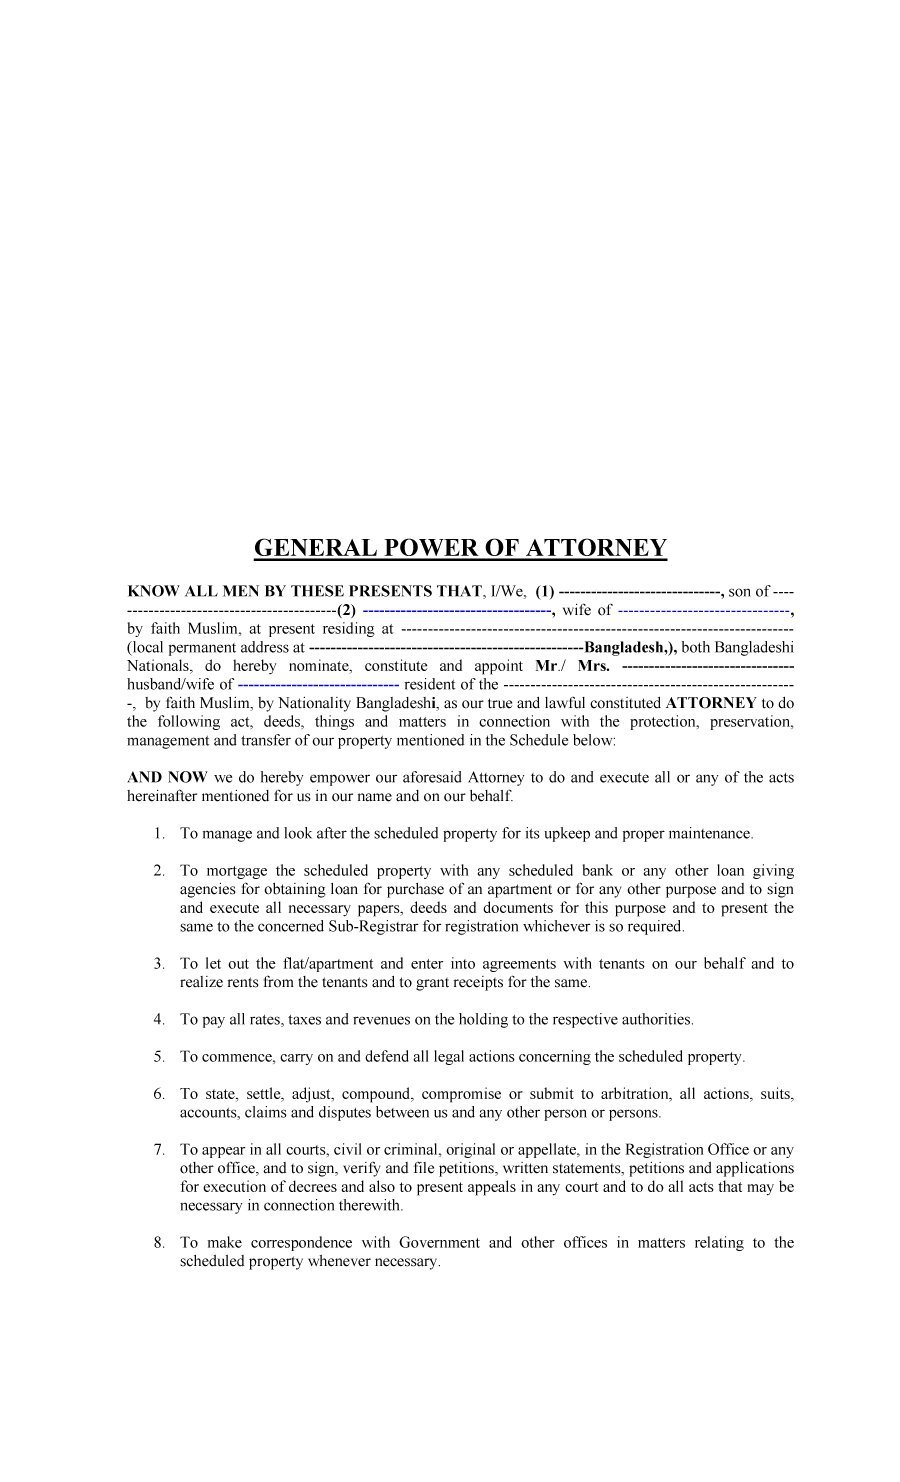 Pin By Leong Chuan On Background Power Of Attorney Form Power Of Attorney Lettering